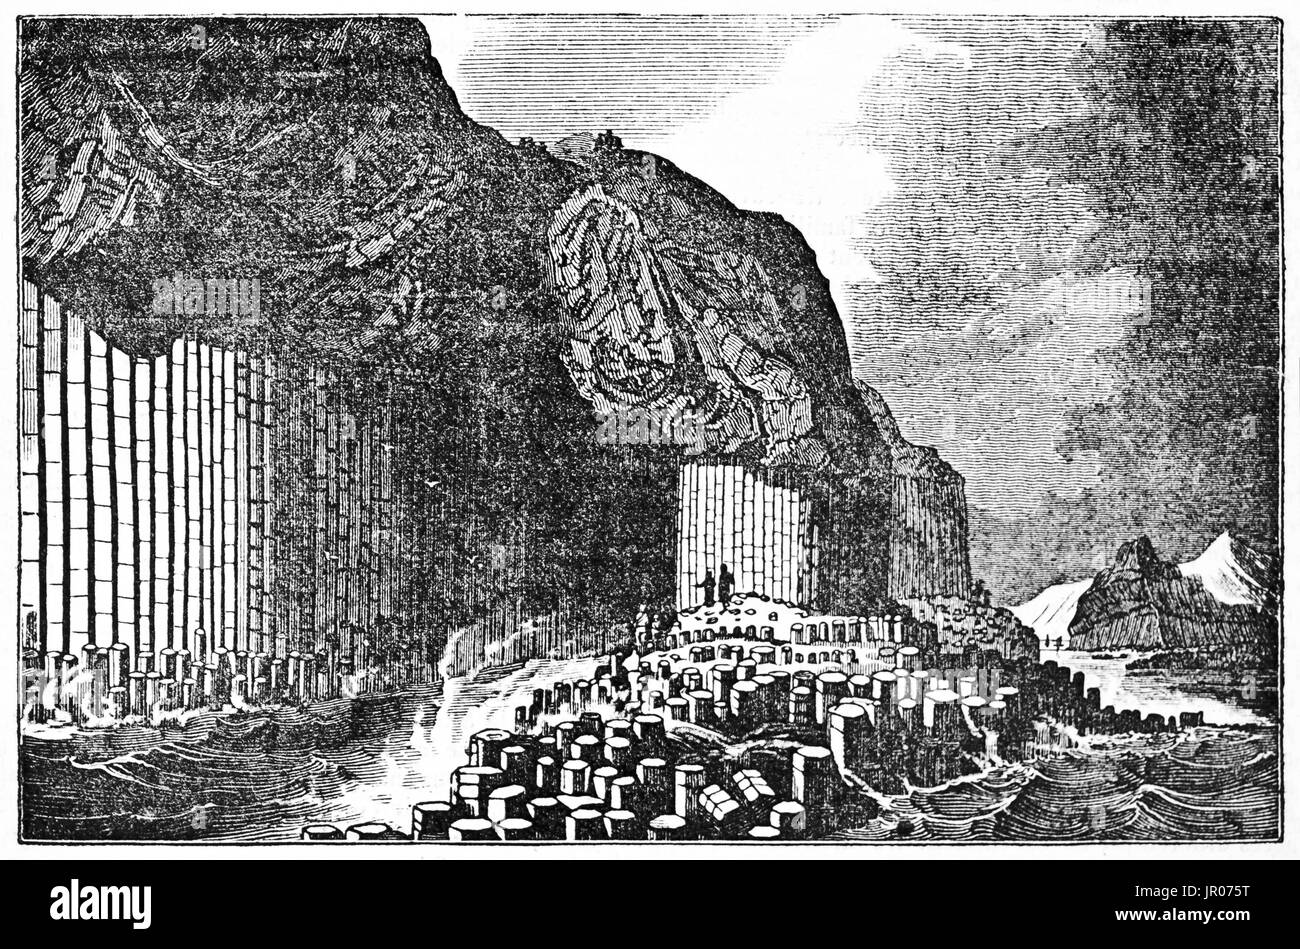 Old view of  Fingal's Cave and  basalt formations in Staffa island, Inner Hebrides, Scotland. By unidentified author, published on Magasin Pittoresque - Stock Image